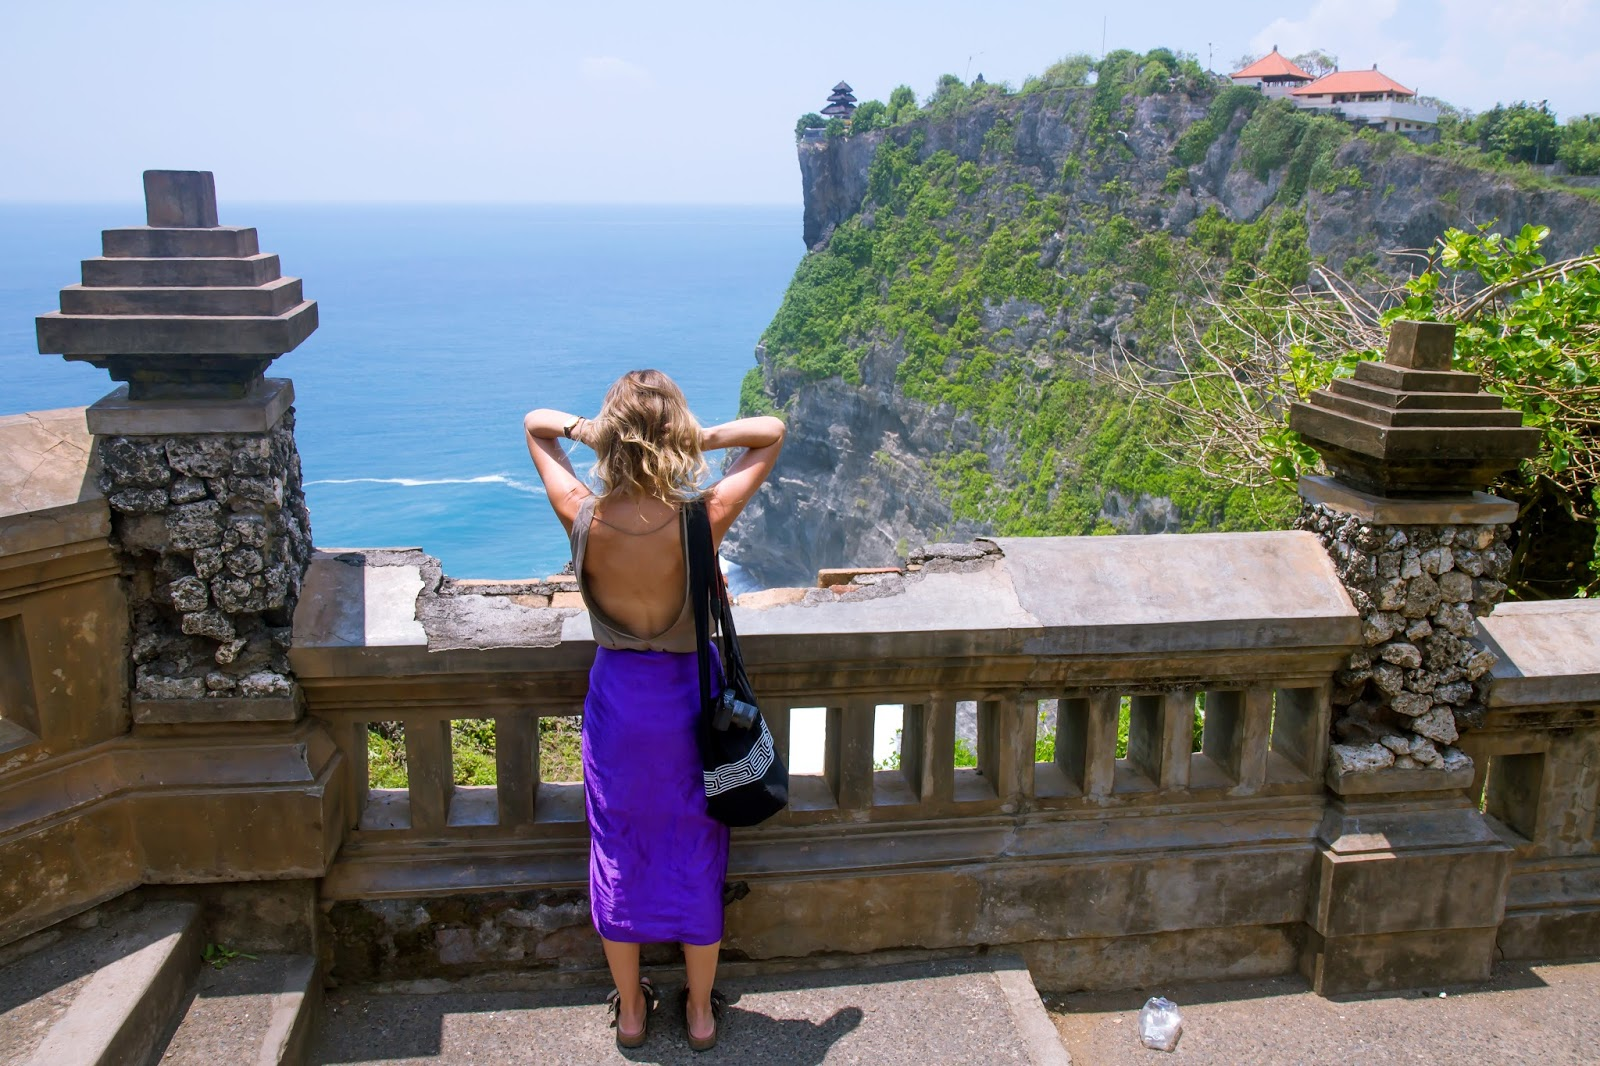 travel blogger, Alison Hutchinson, at Uluwatu Temple in Bali, Indonesia